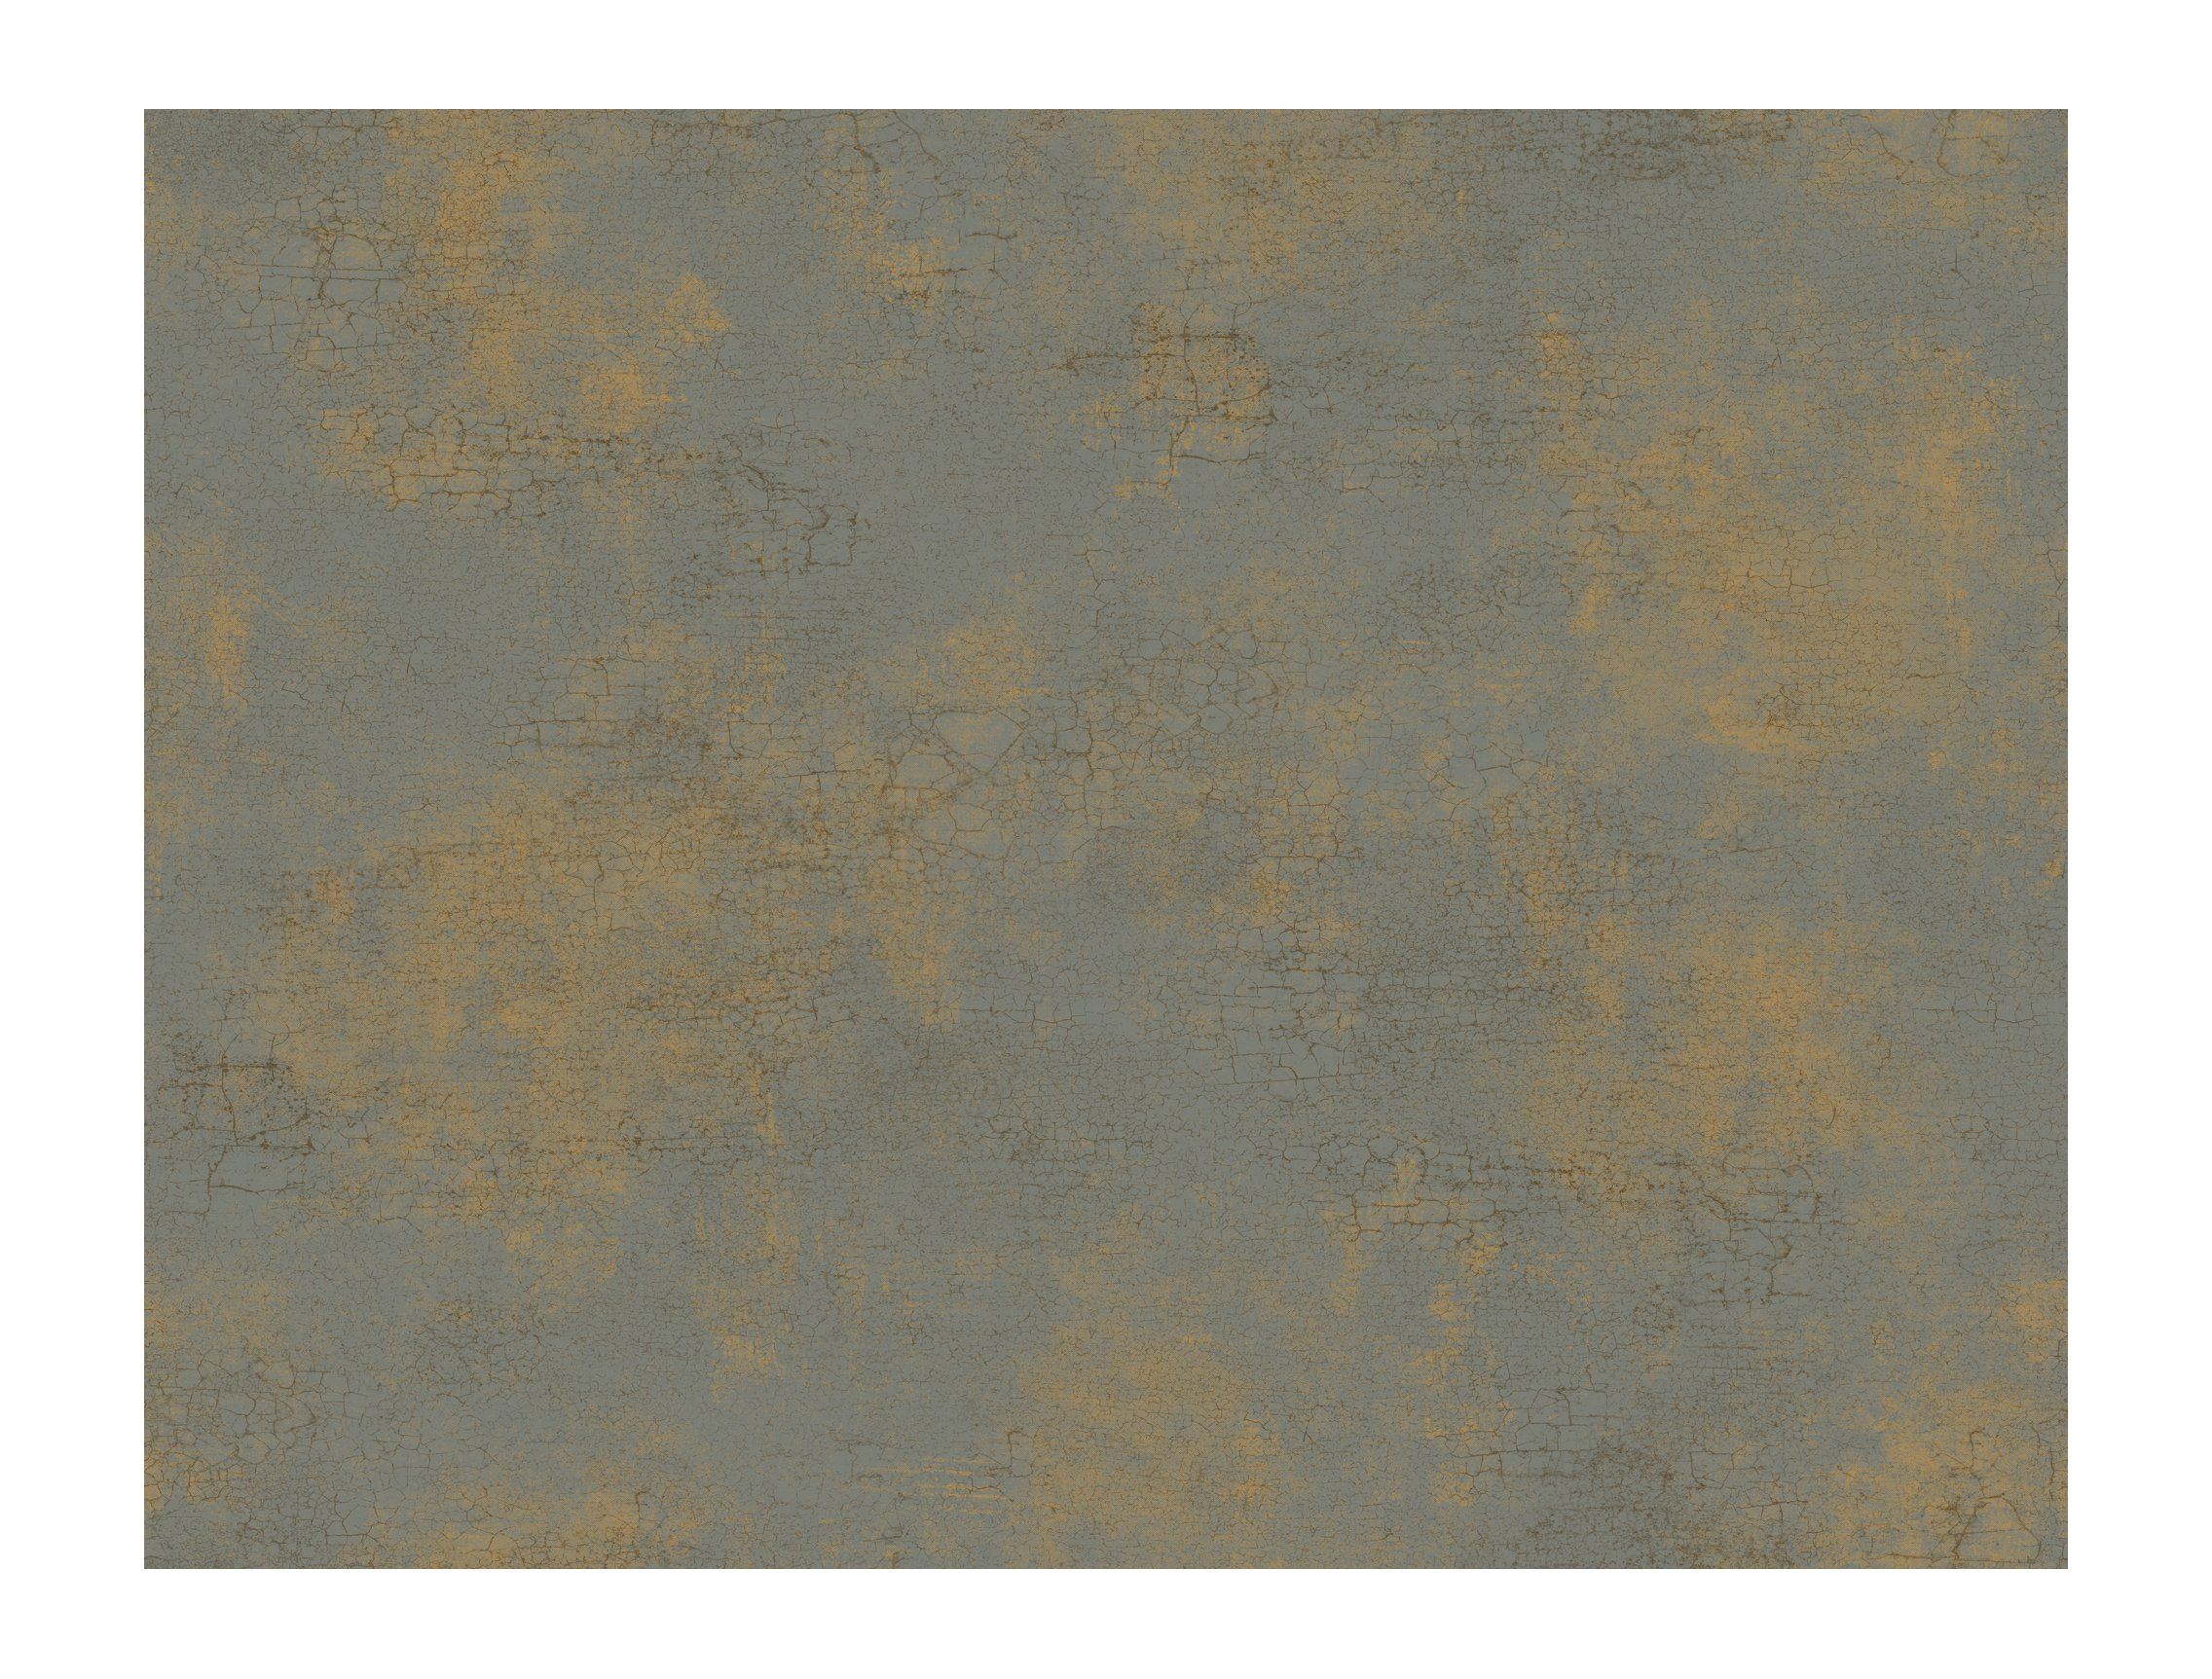 York Wallcoverings GL4684SMP Brandywine Texture 8-Inch x 10-Inch Wallpaper Memo Sample, Deep Pearled Platinum/Bronze/Cool Tan by York Wallcoverings